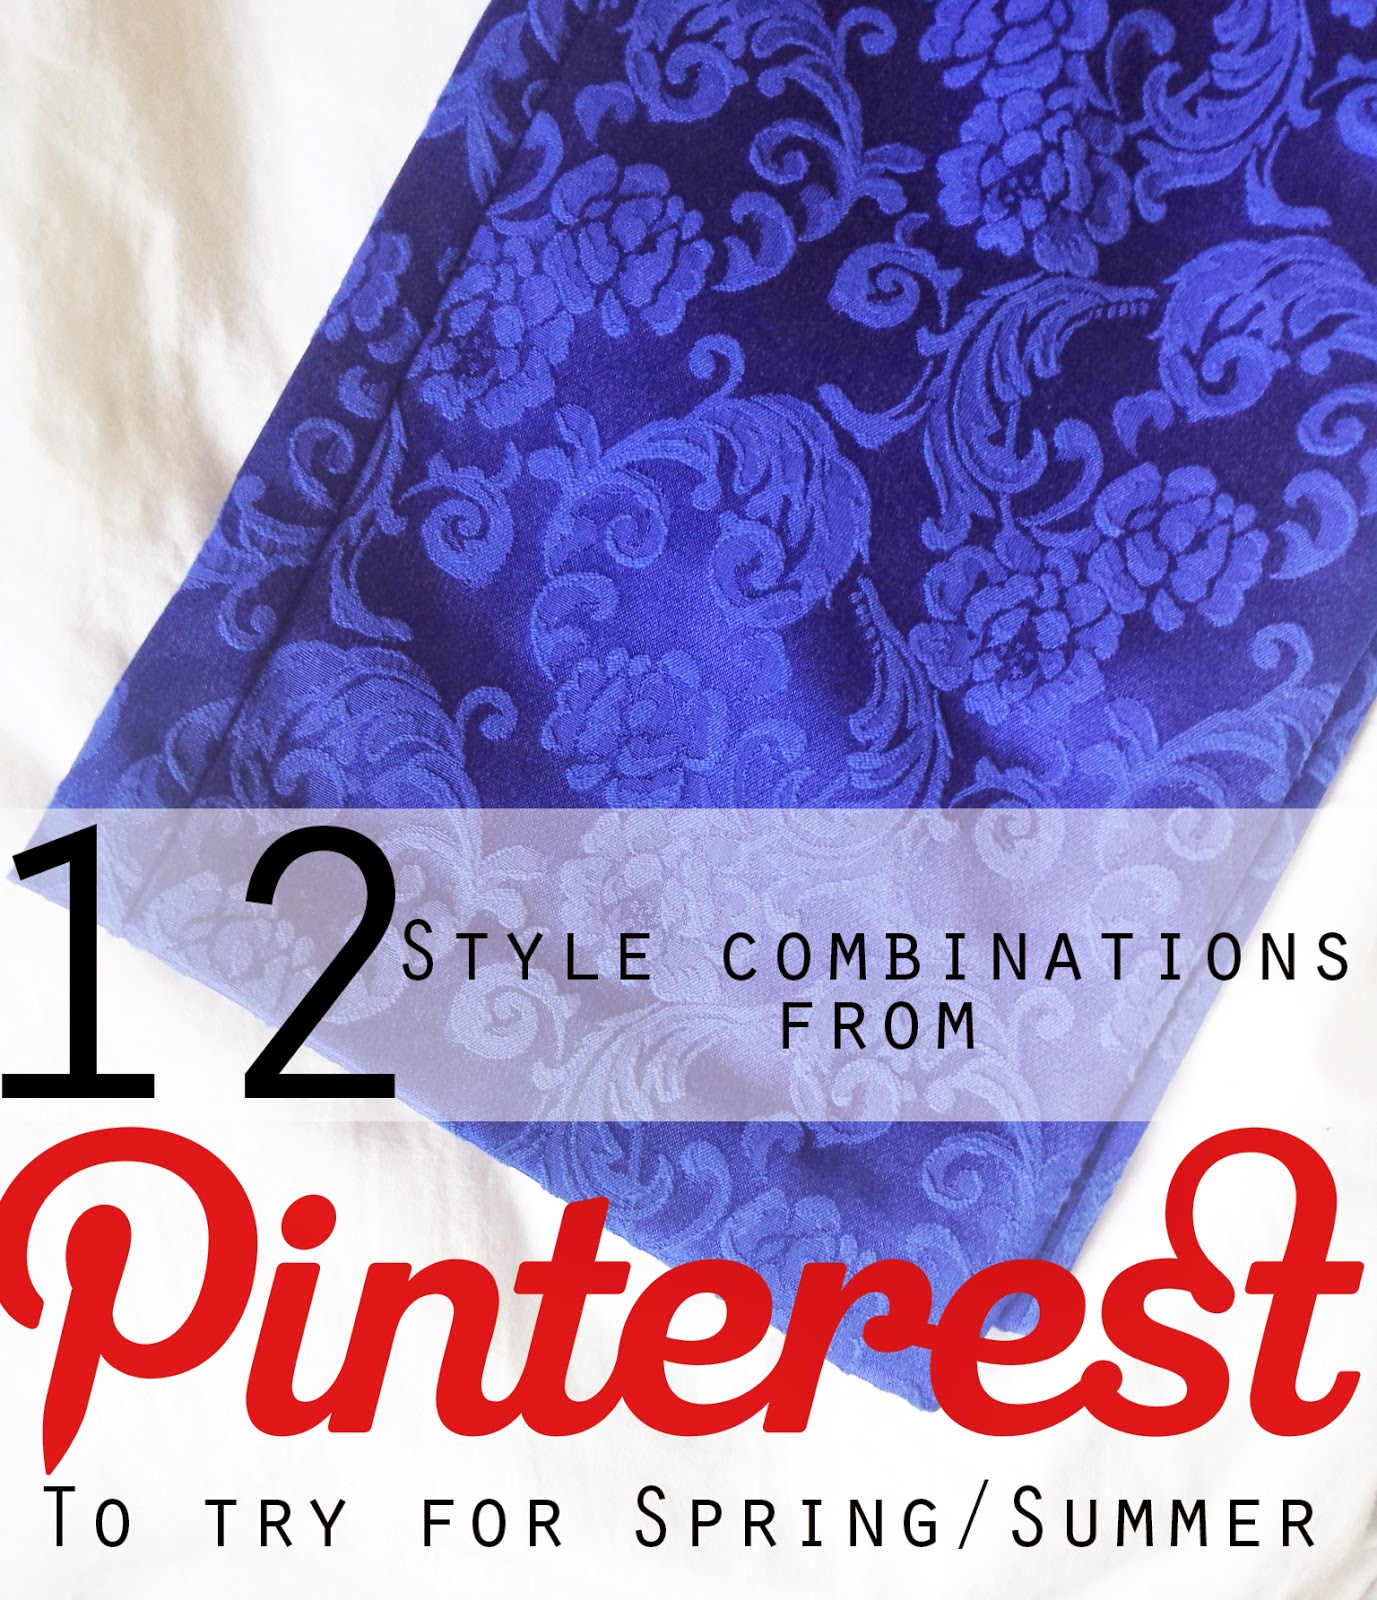 Spring Style Inspiration, 12 Style Combinations from Pinterest to try for Spring/Summer.